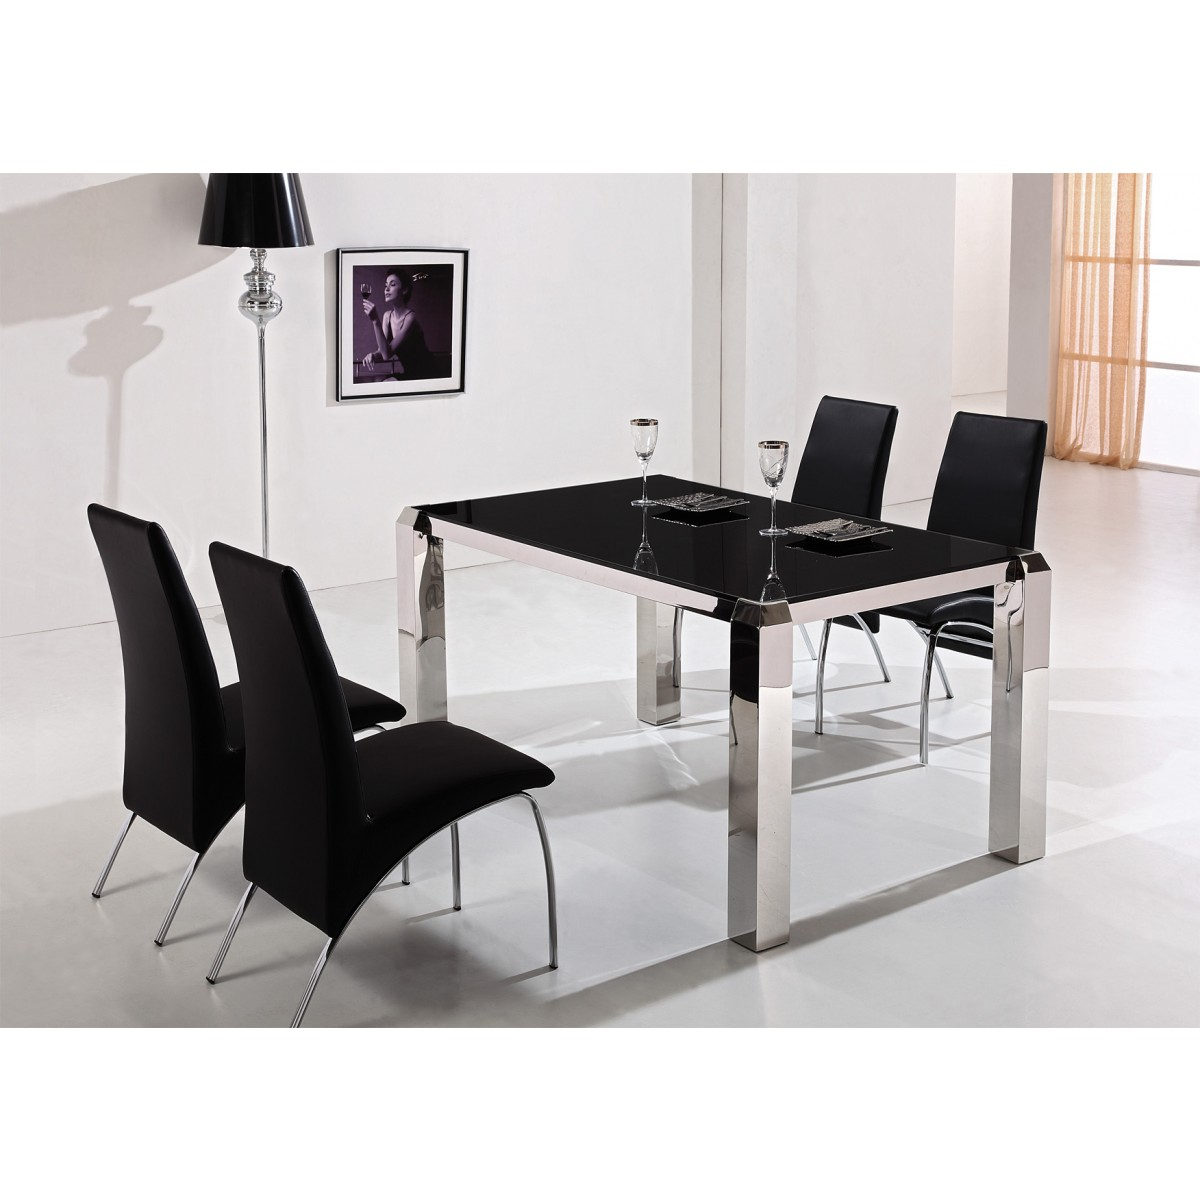 Table en inox neuilly tables de salle manger tables consoles - Destockage table a manger ...